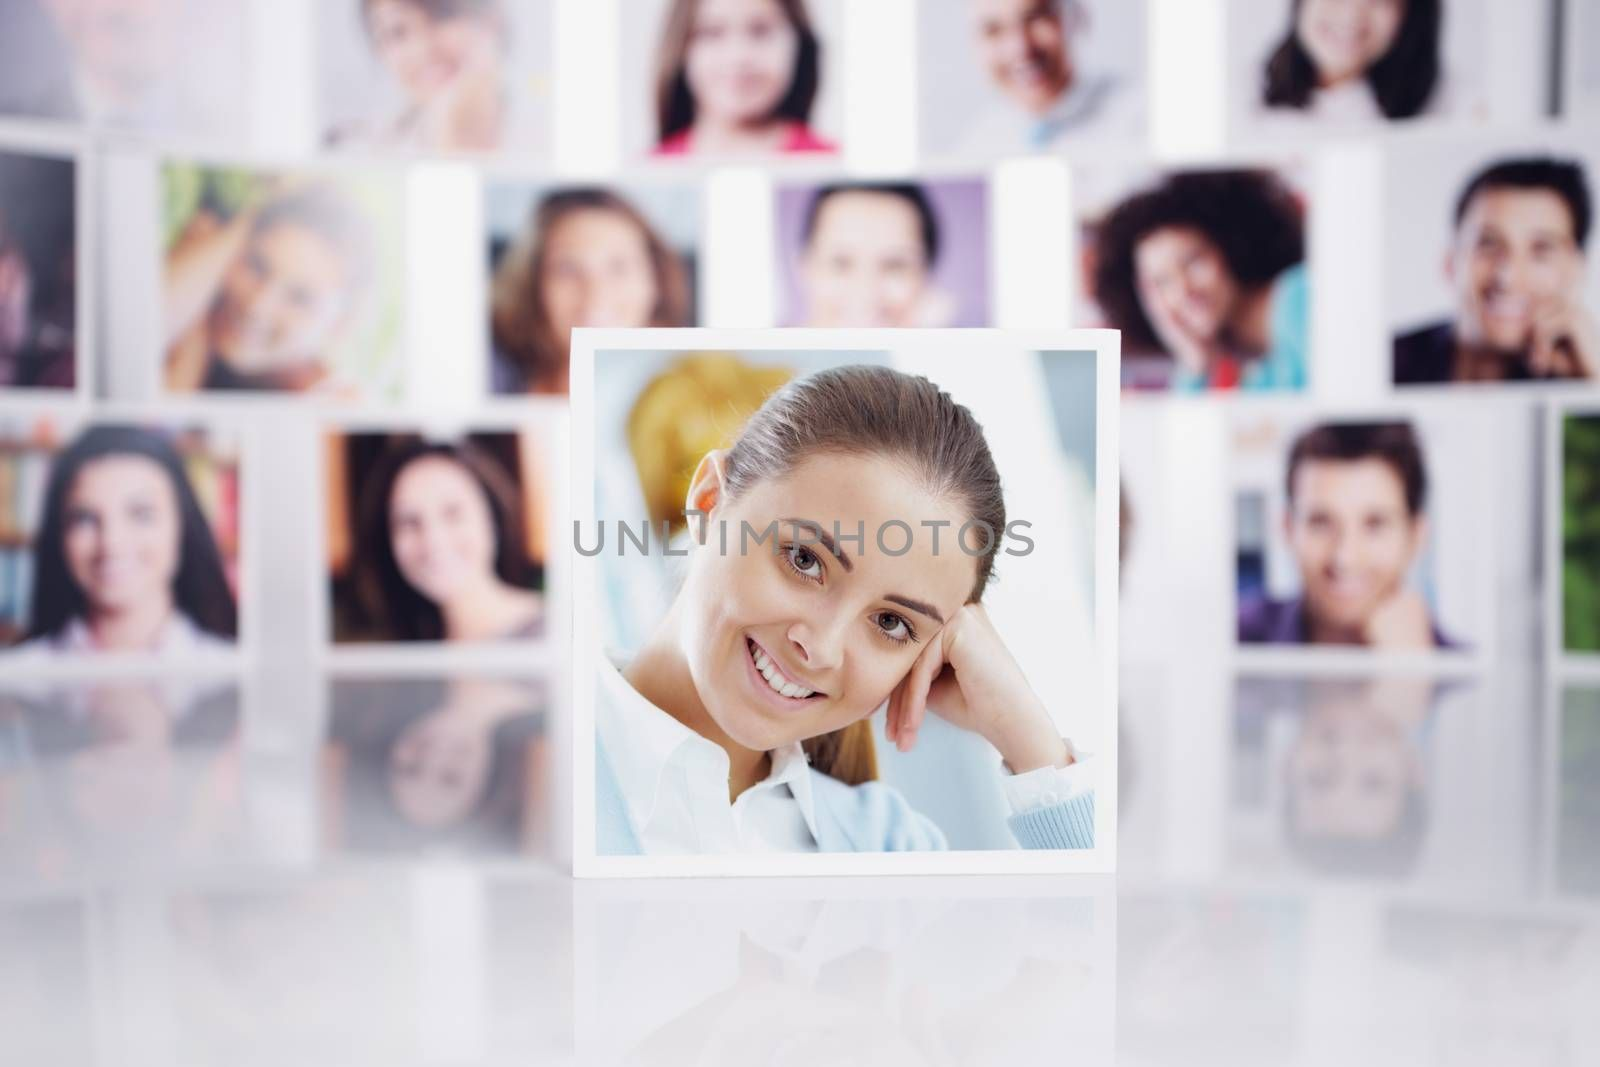 Conceptual portraits of a group of people with smiling woman in foreground